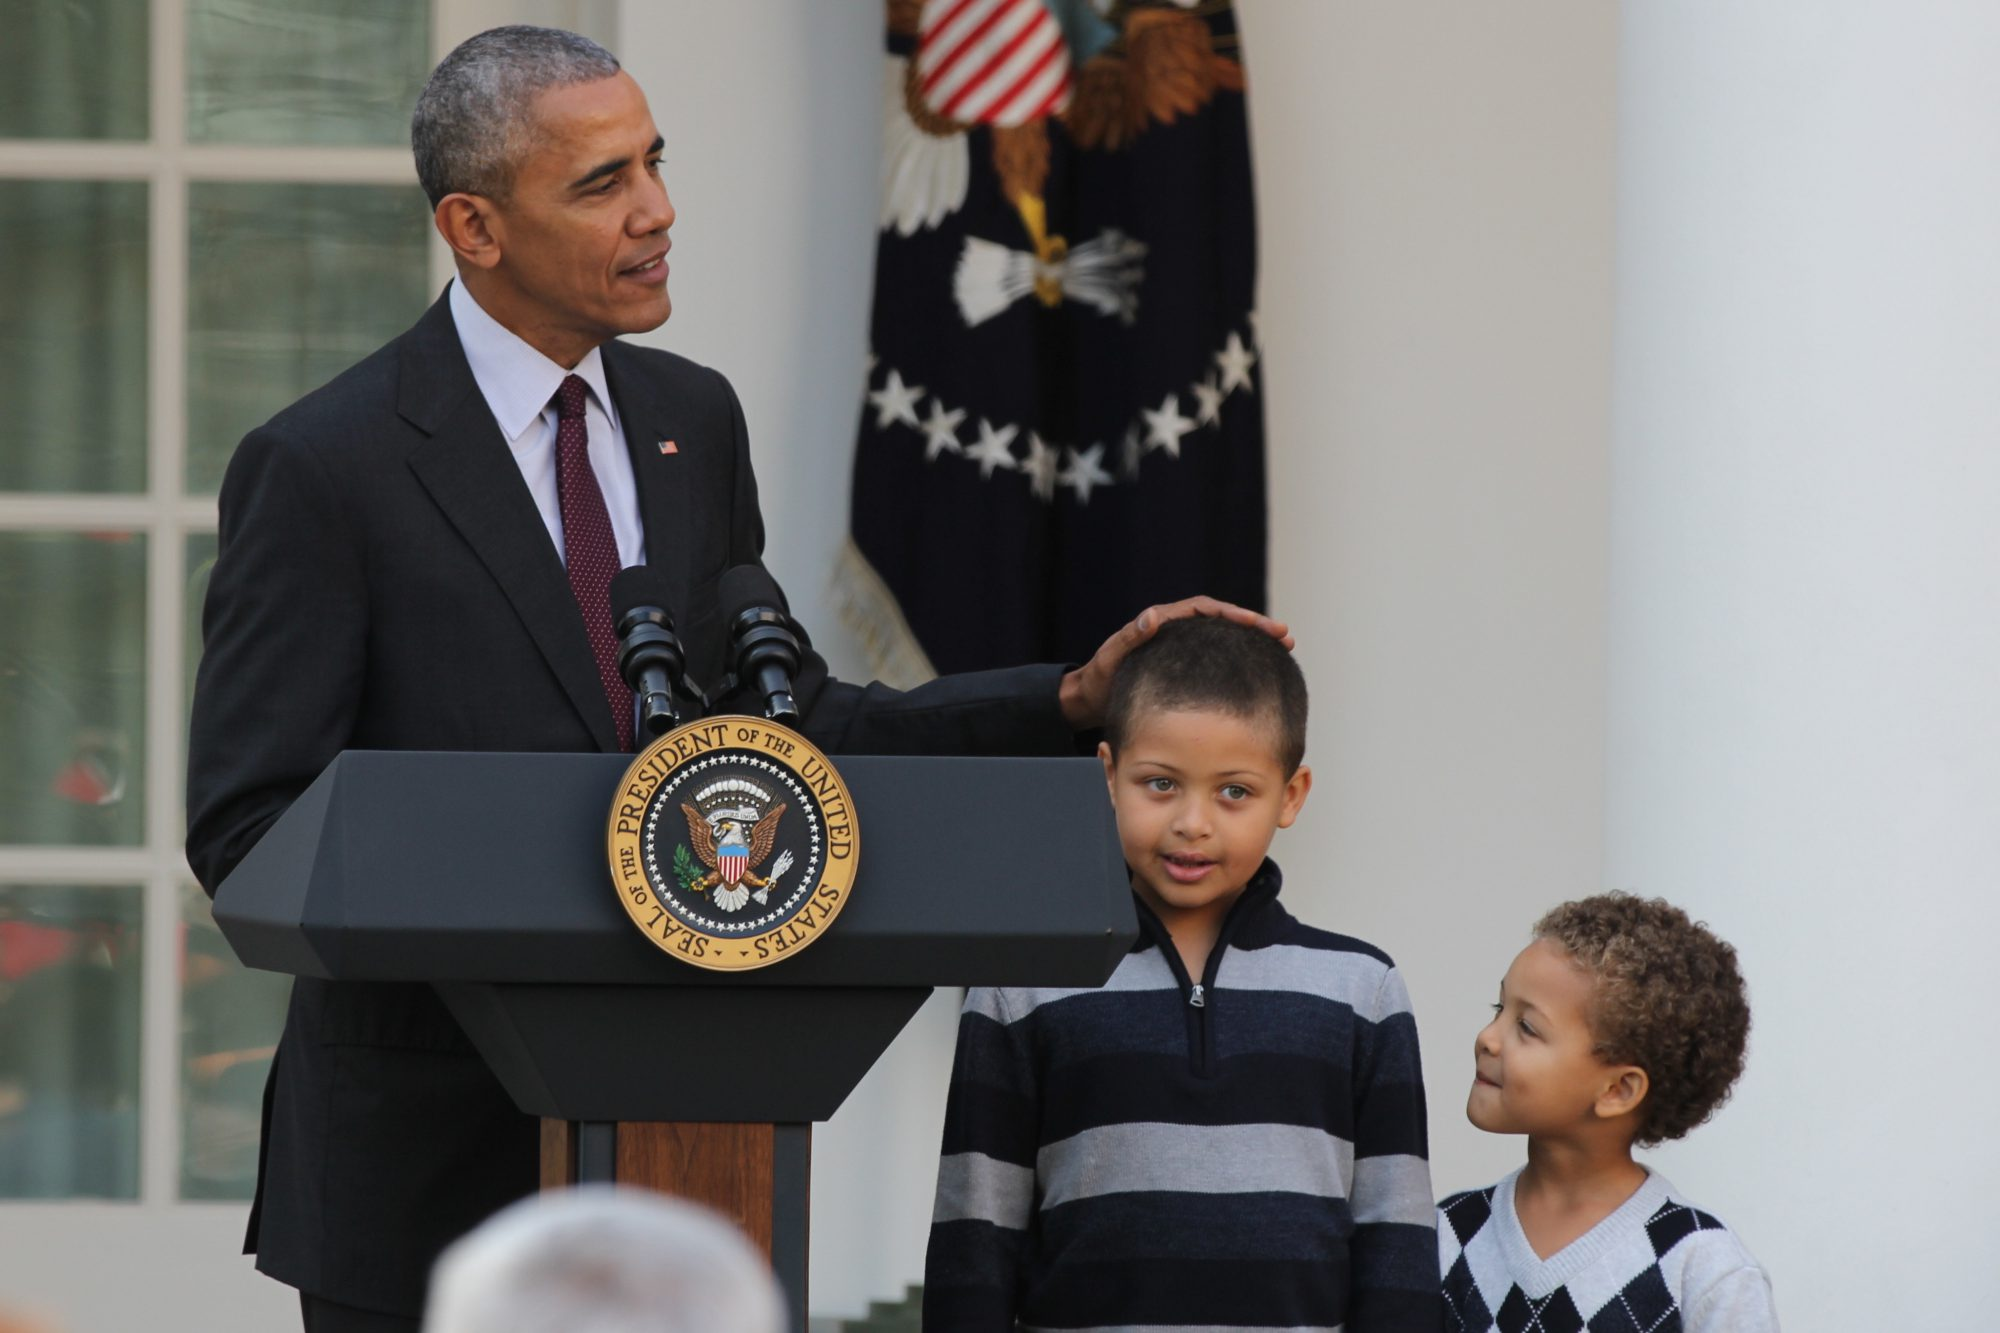 """Unlike Malia and Sasha, the young boys """"have not yet been turned cynical by Washington,"""" Obama says, placing his hand on top of his nephew's head."""